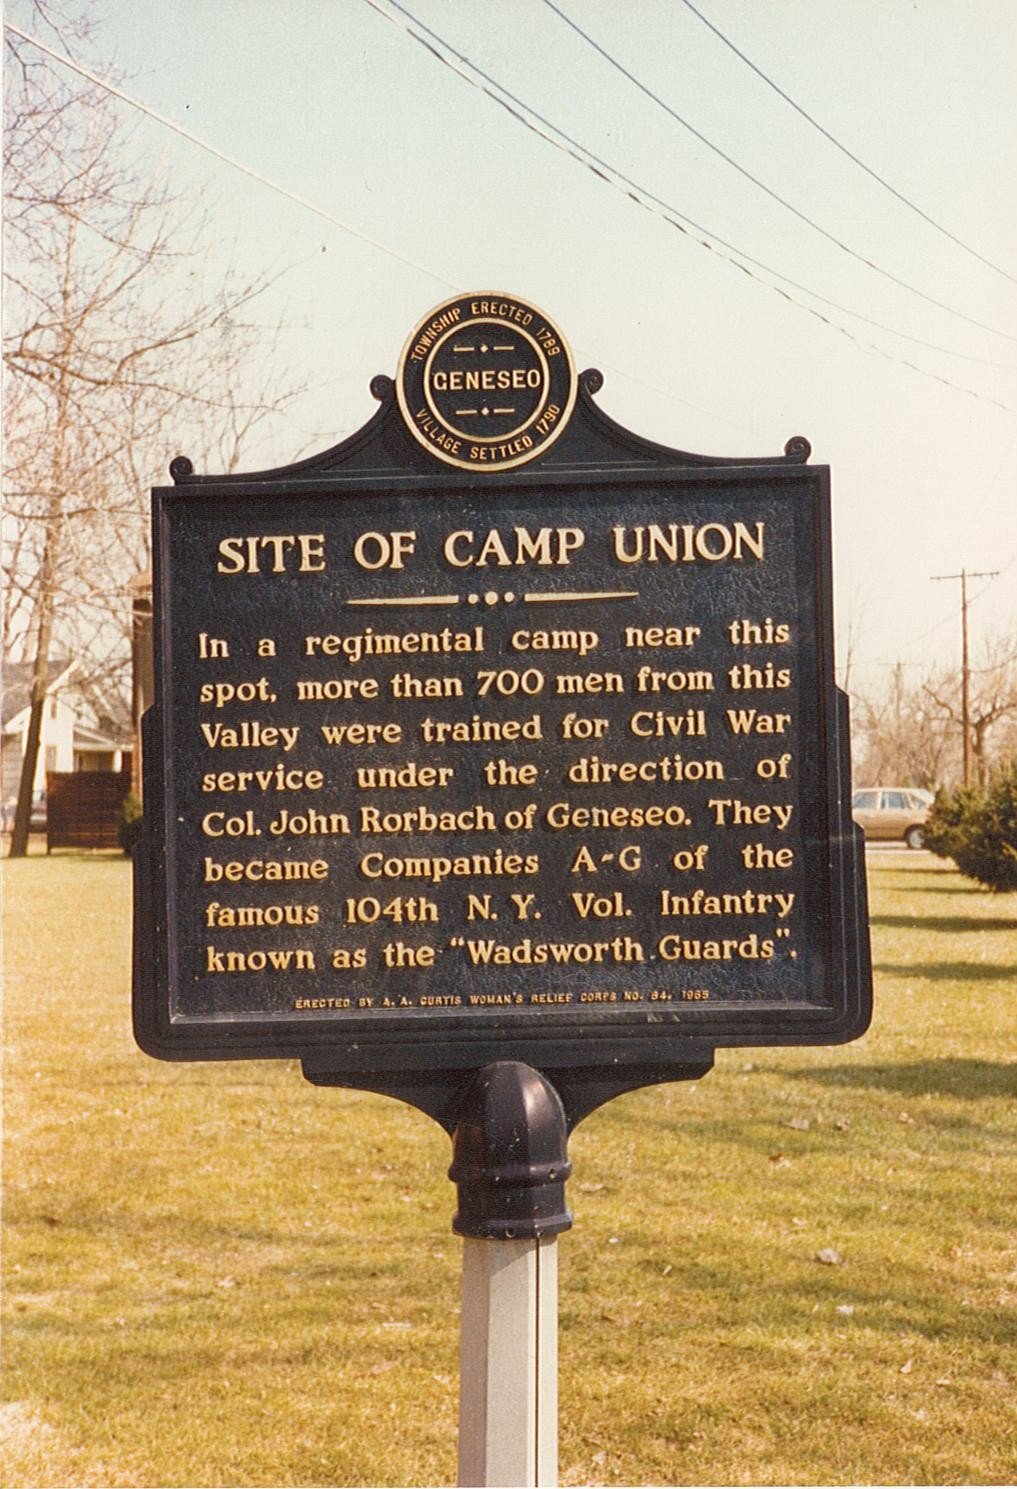 Image of blue and yellow historical marker sign for Cap Union